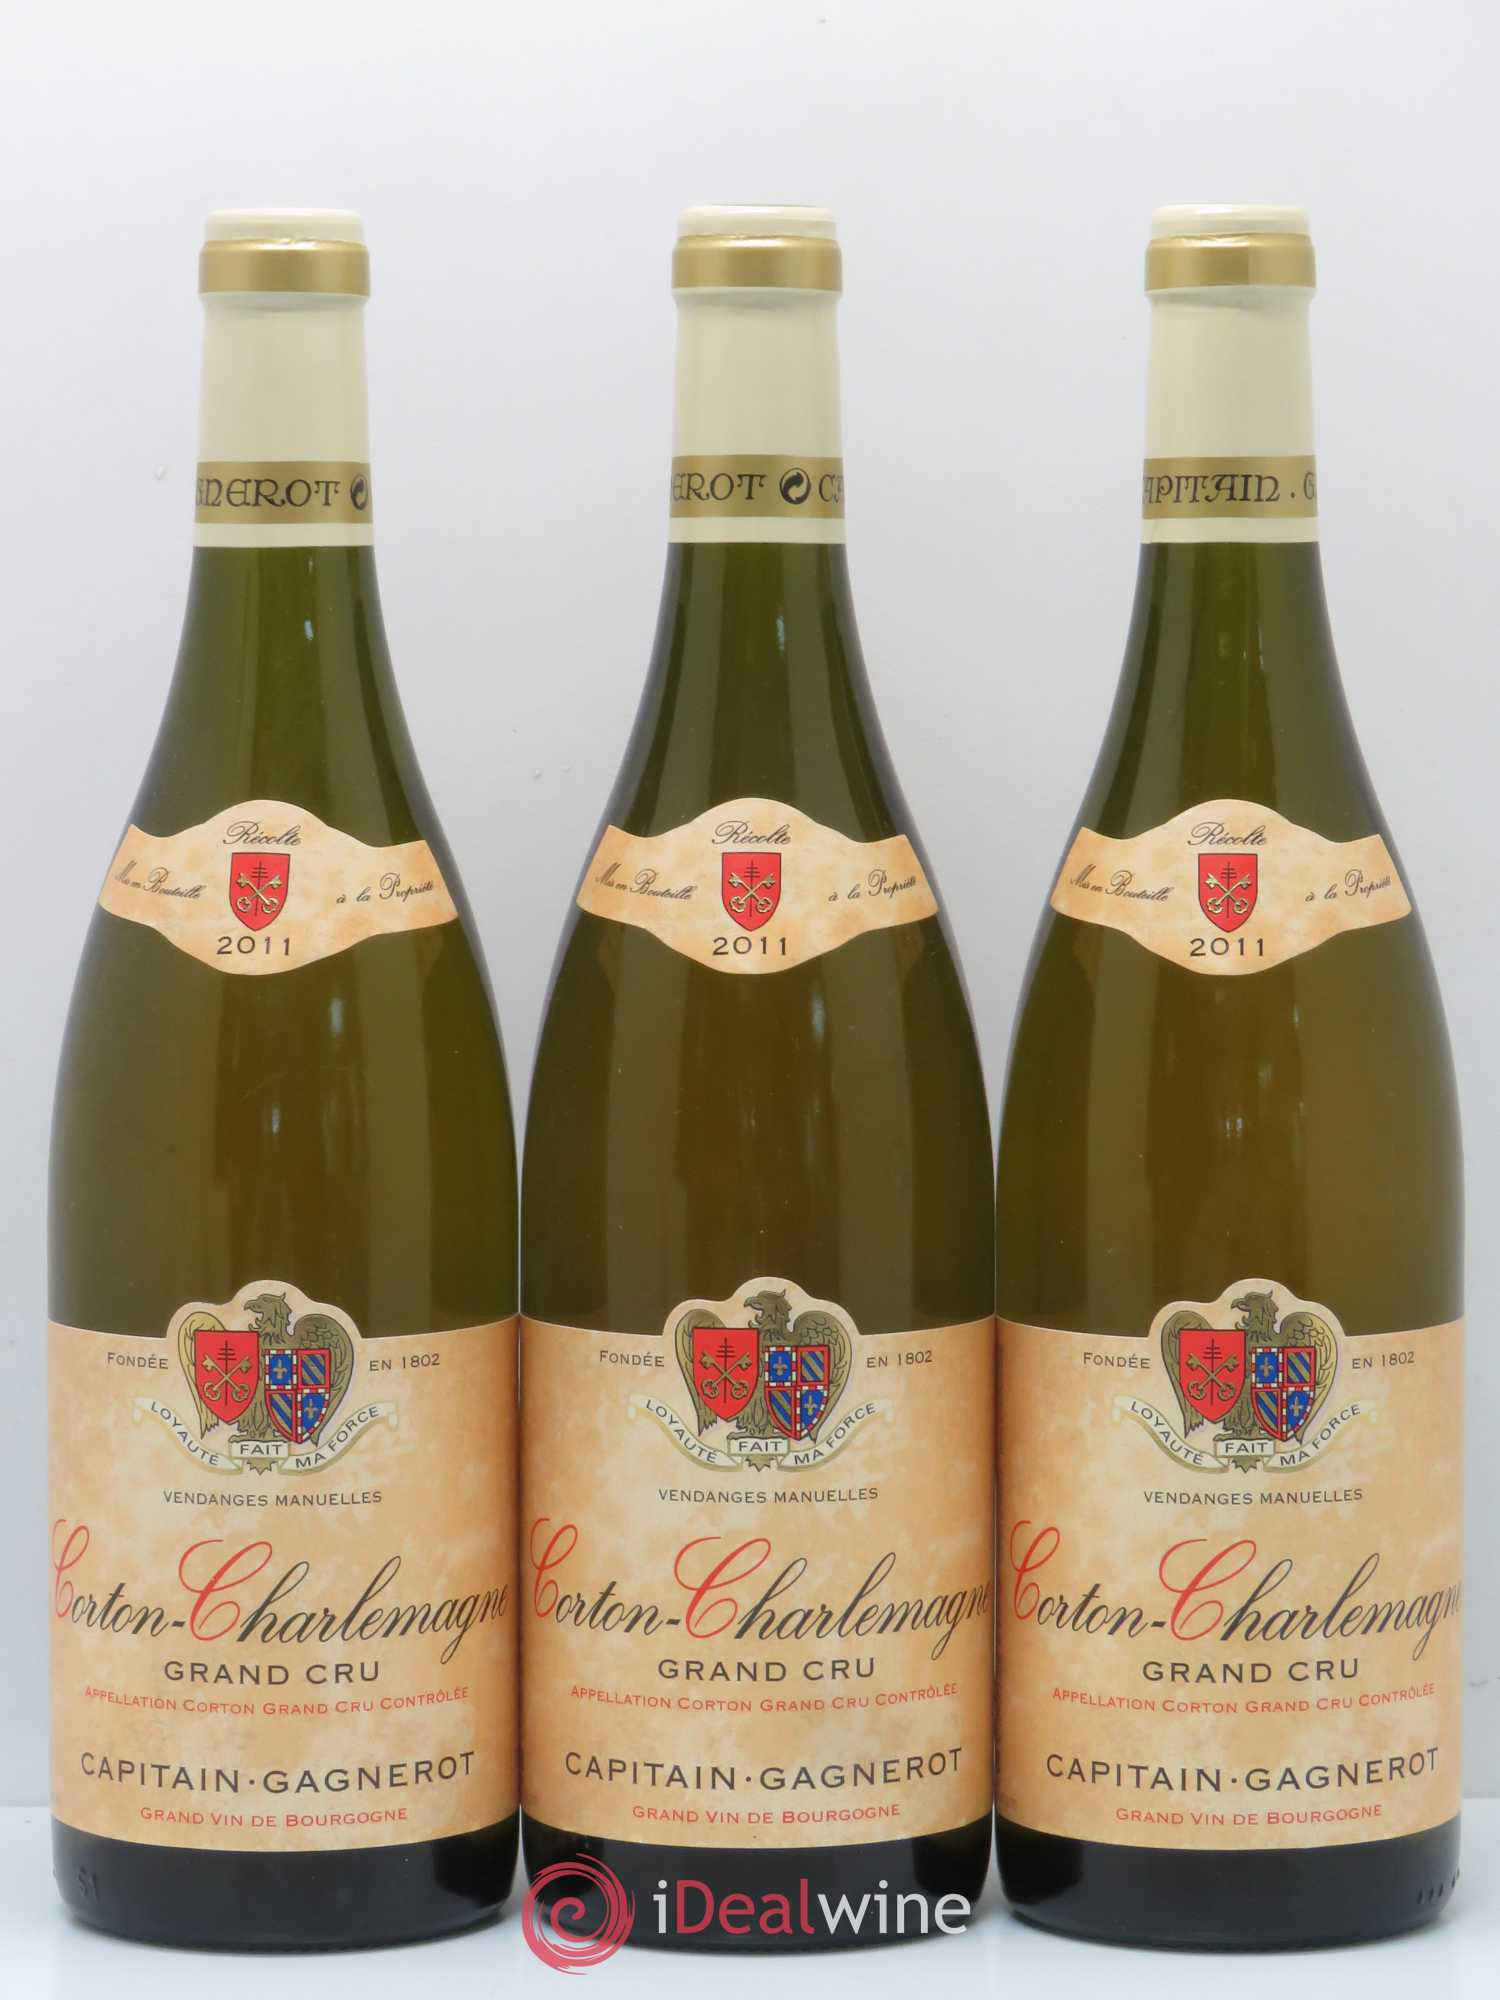 Corton-Charlemagne Grand Cru Capitain Gagneraud 2011 - Lot de 3 Bouteilles